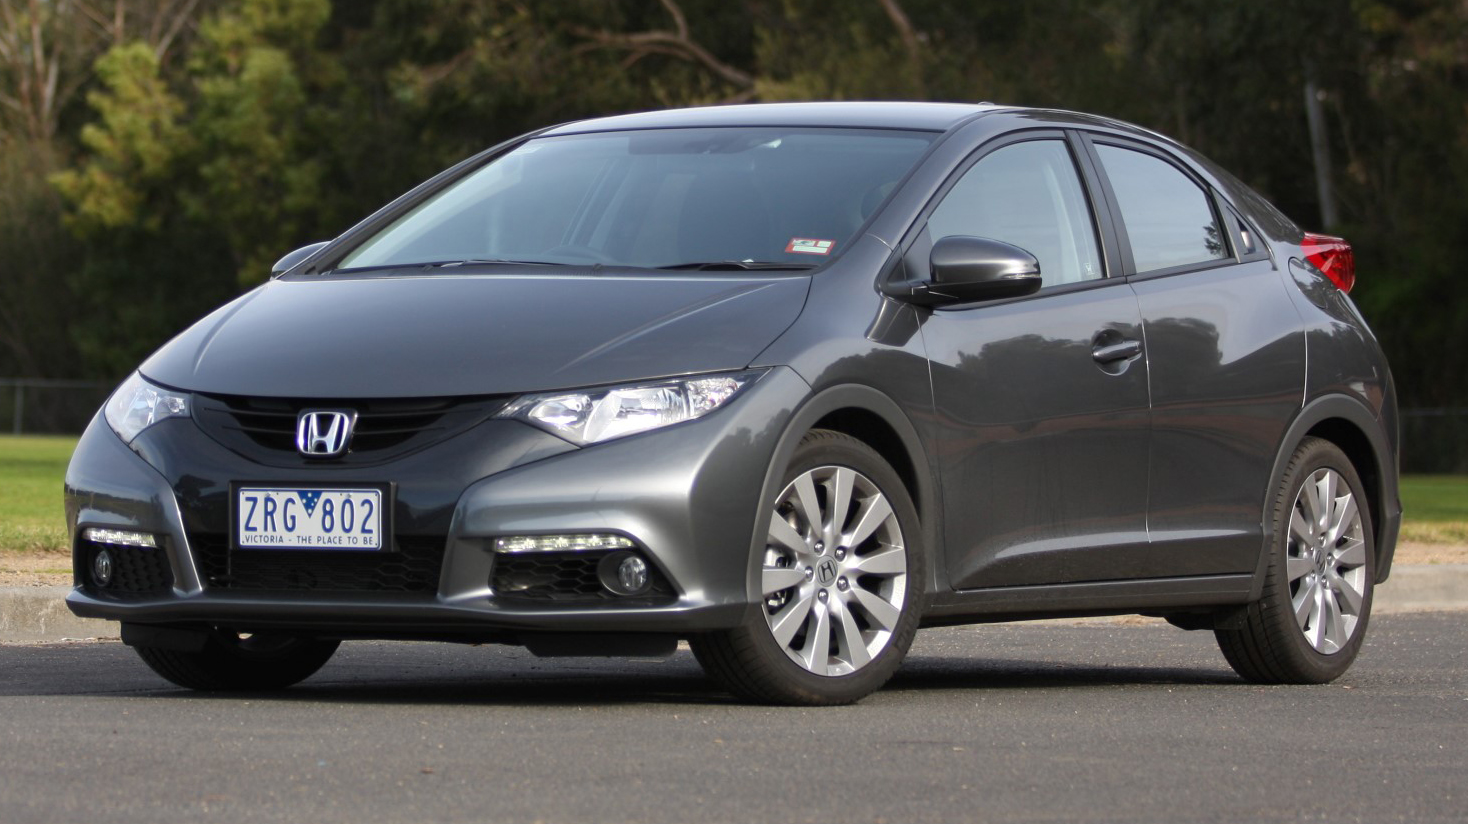 2013 Honda Civic DTi-S Review Snapshot Review Free Download Image Of